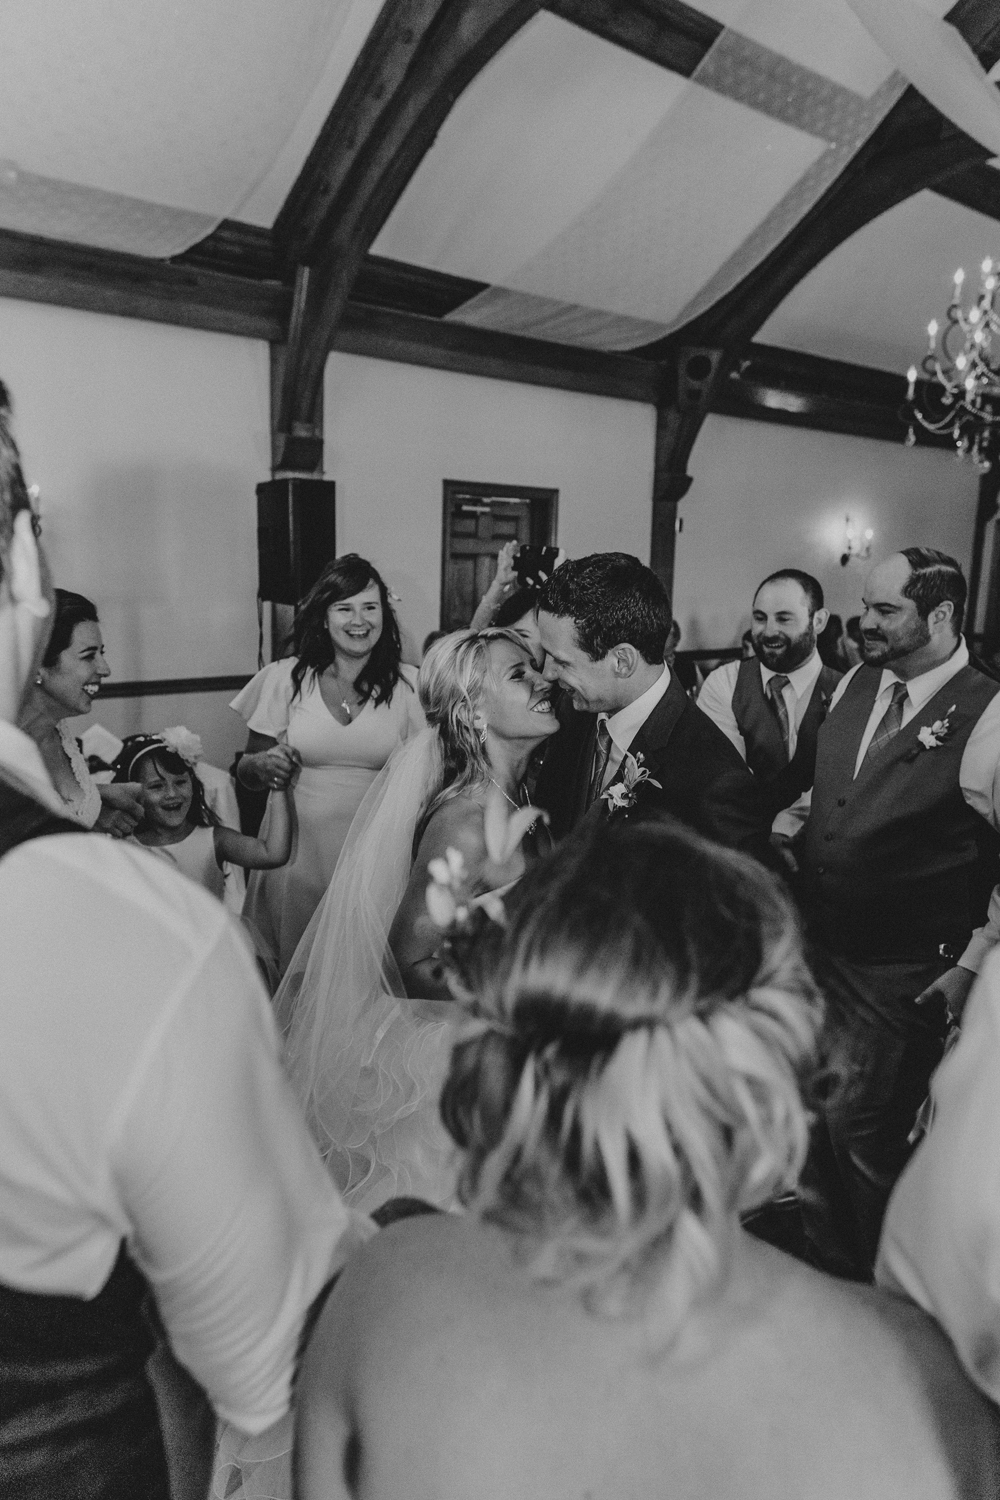 silver-creek-country-club-bride-and-groom-wedding-dance-photography-1